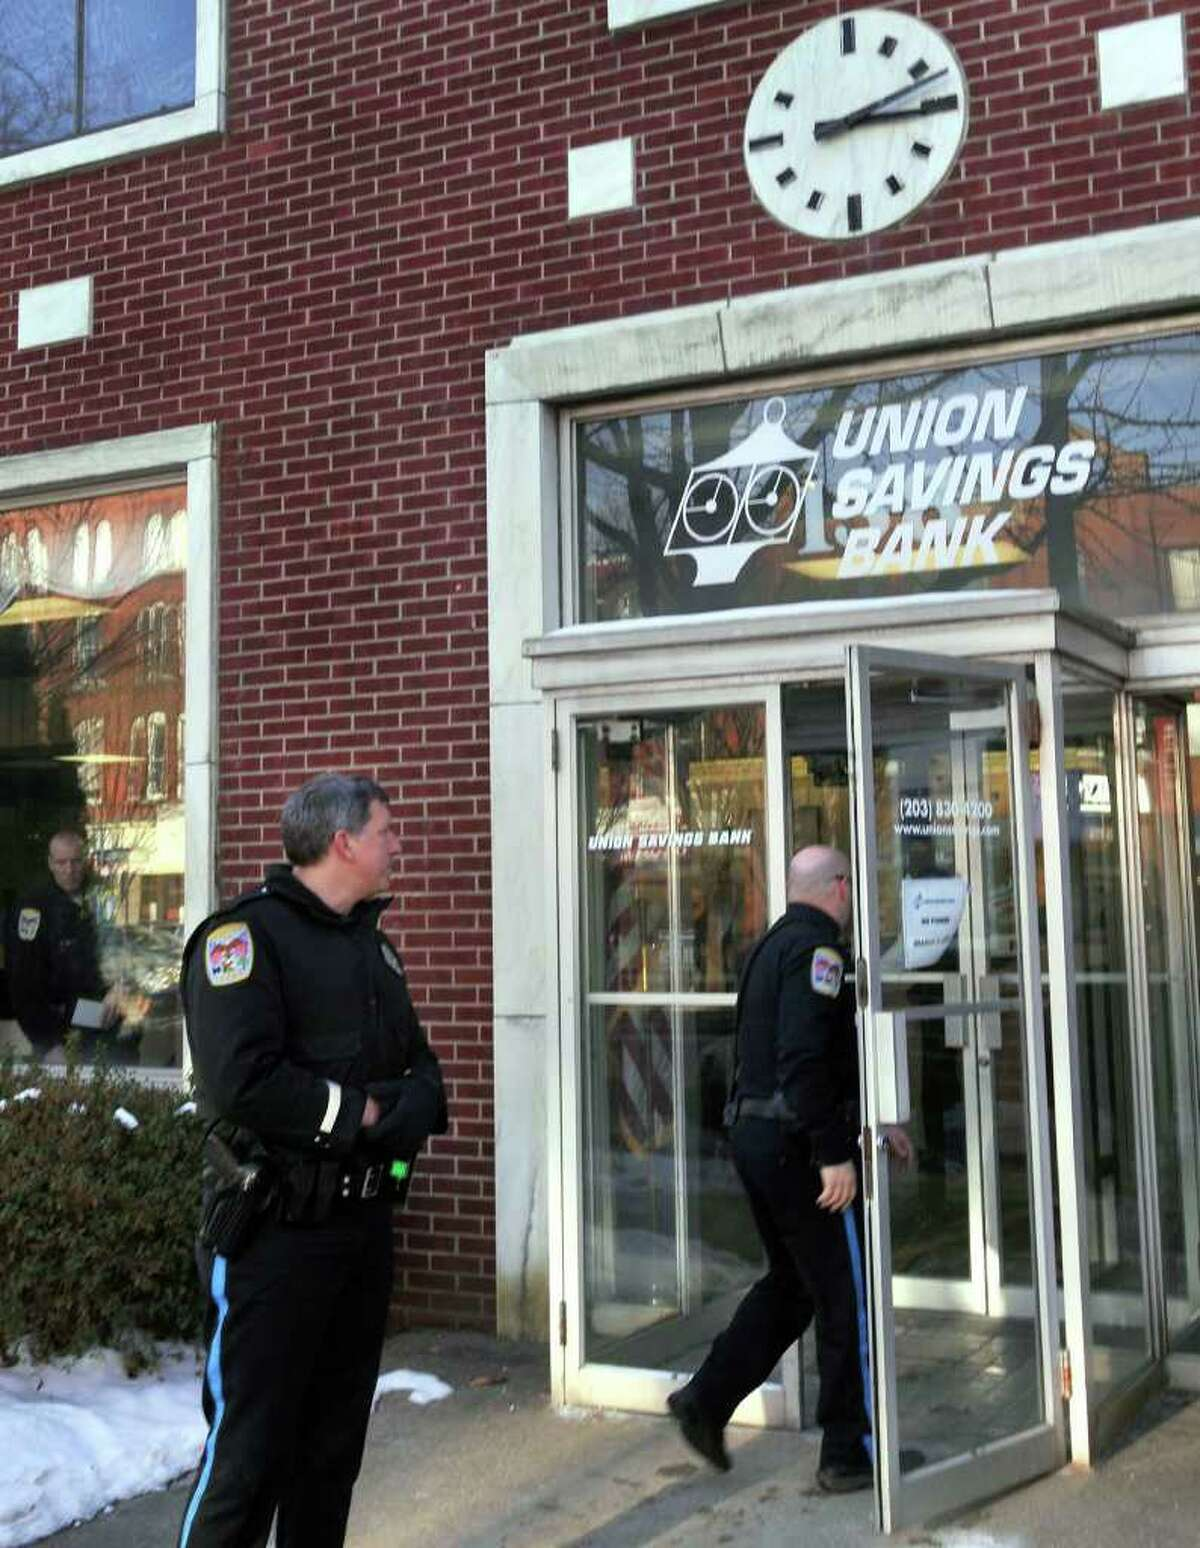 Danbury Police investigating reports of a robbery at the Union Savings Bank, on Main Street, Danbury, on Monday, Jan.11,2010.